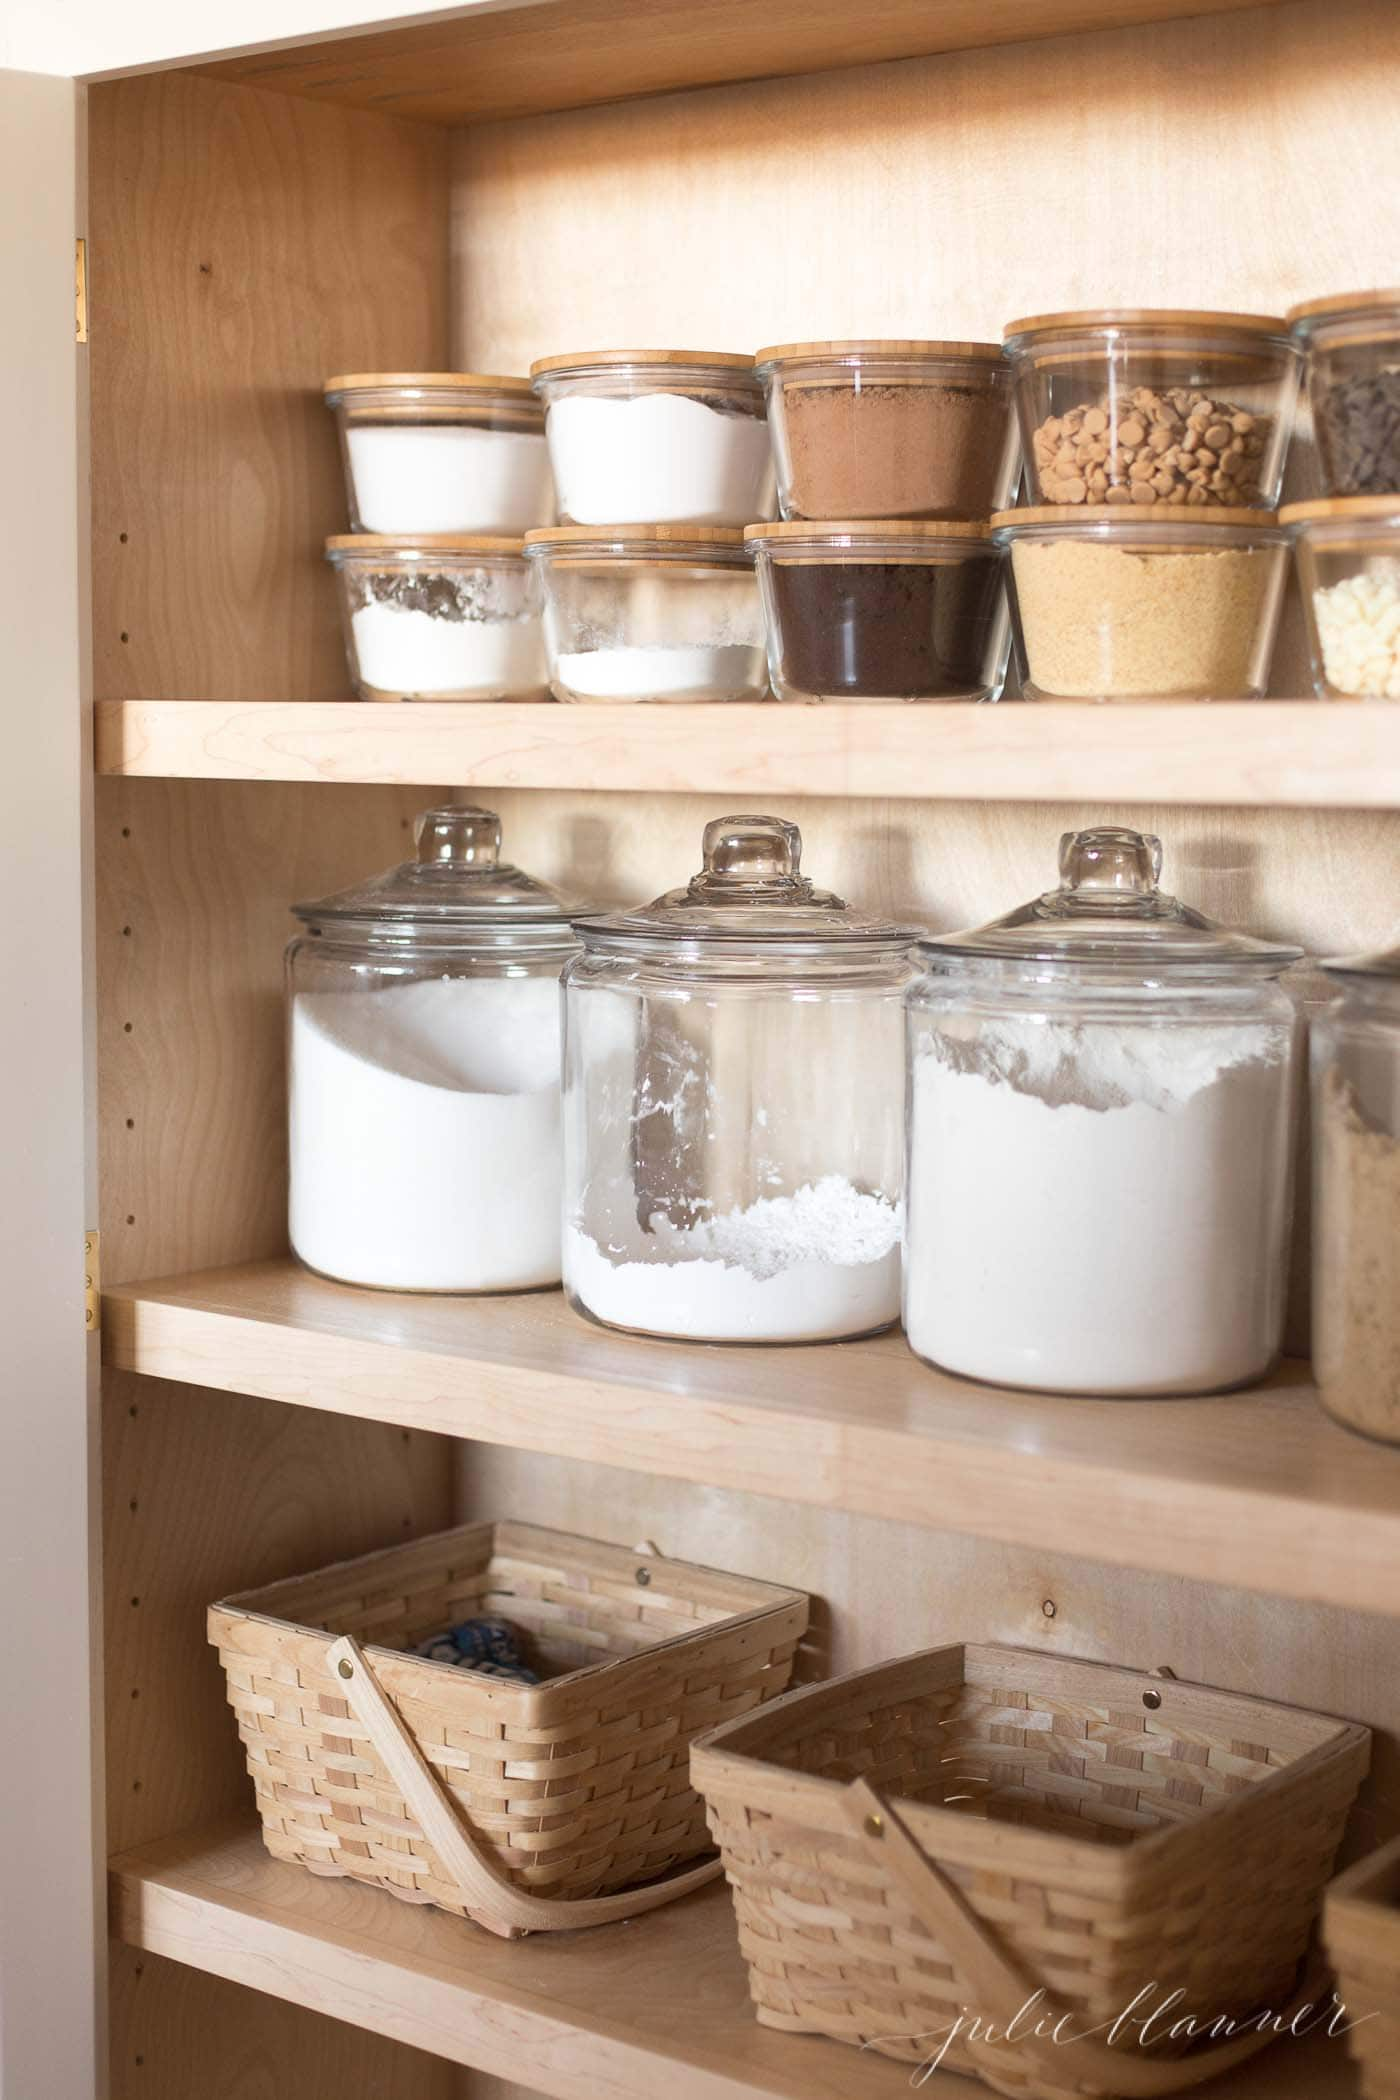 Kitchen Organizer Storage Kitchen Organization Tips Tricks And Secrets To An Organized